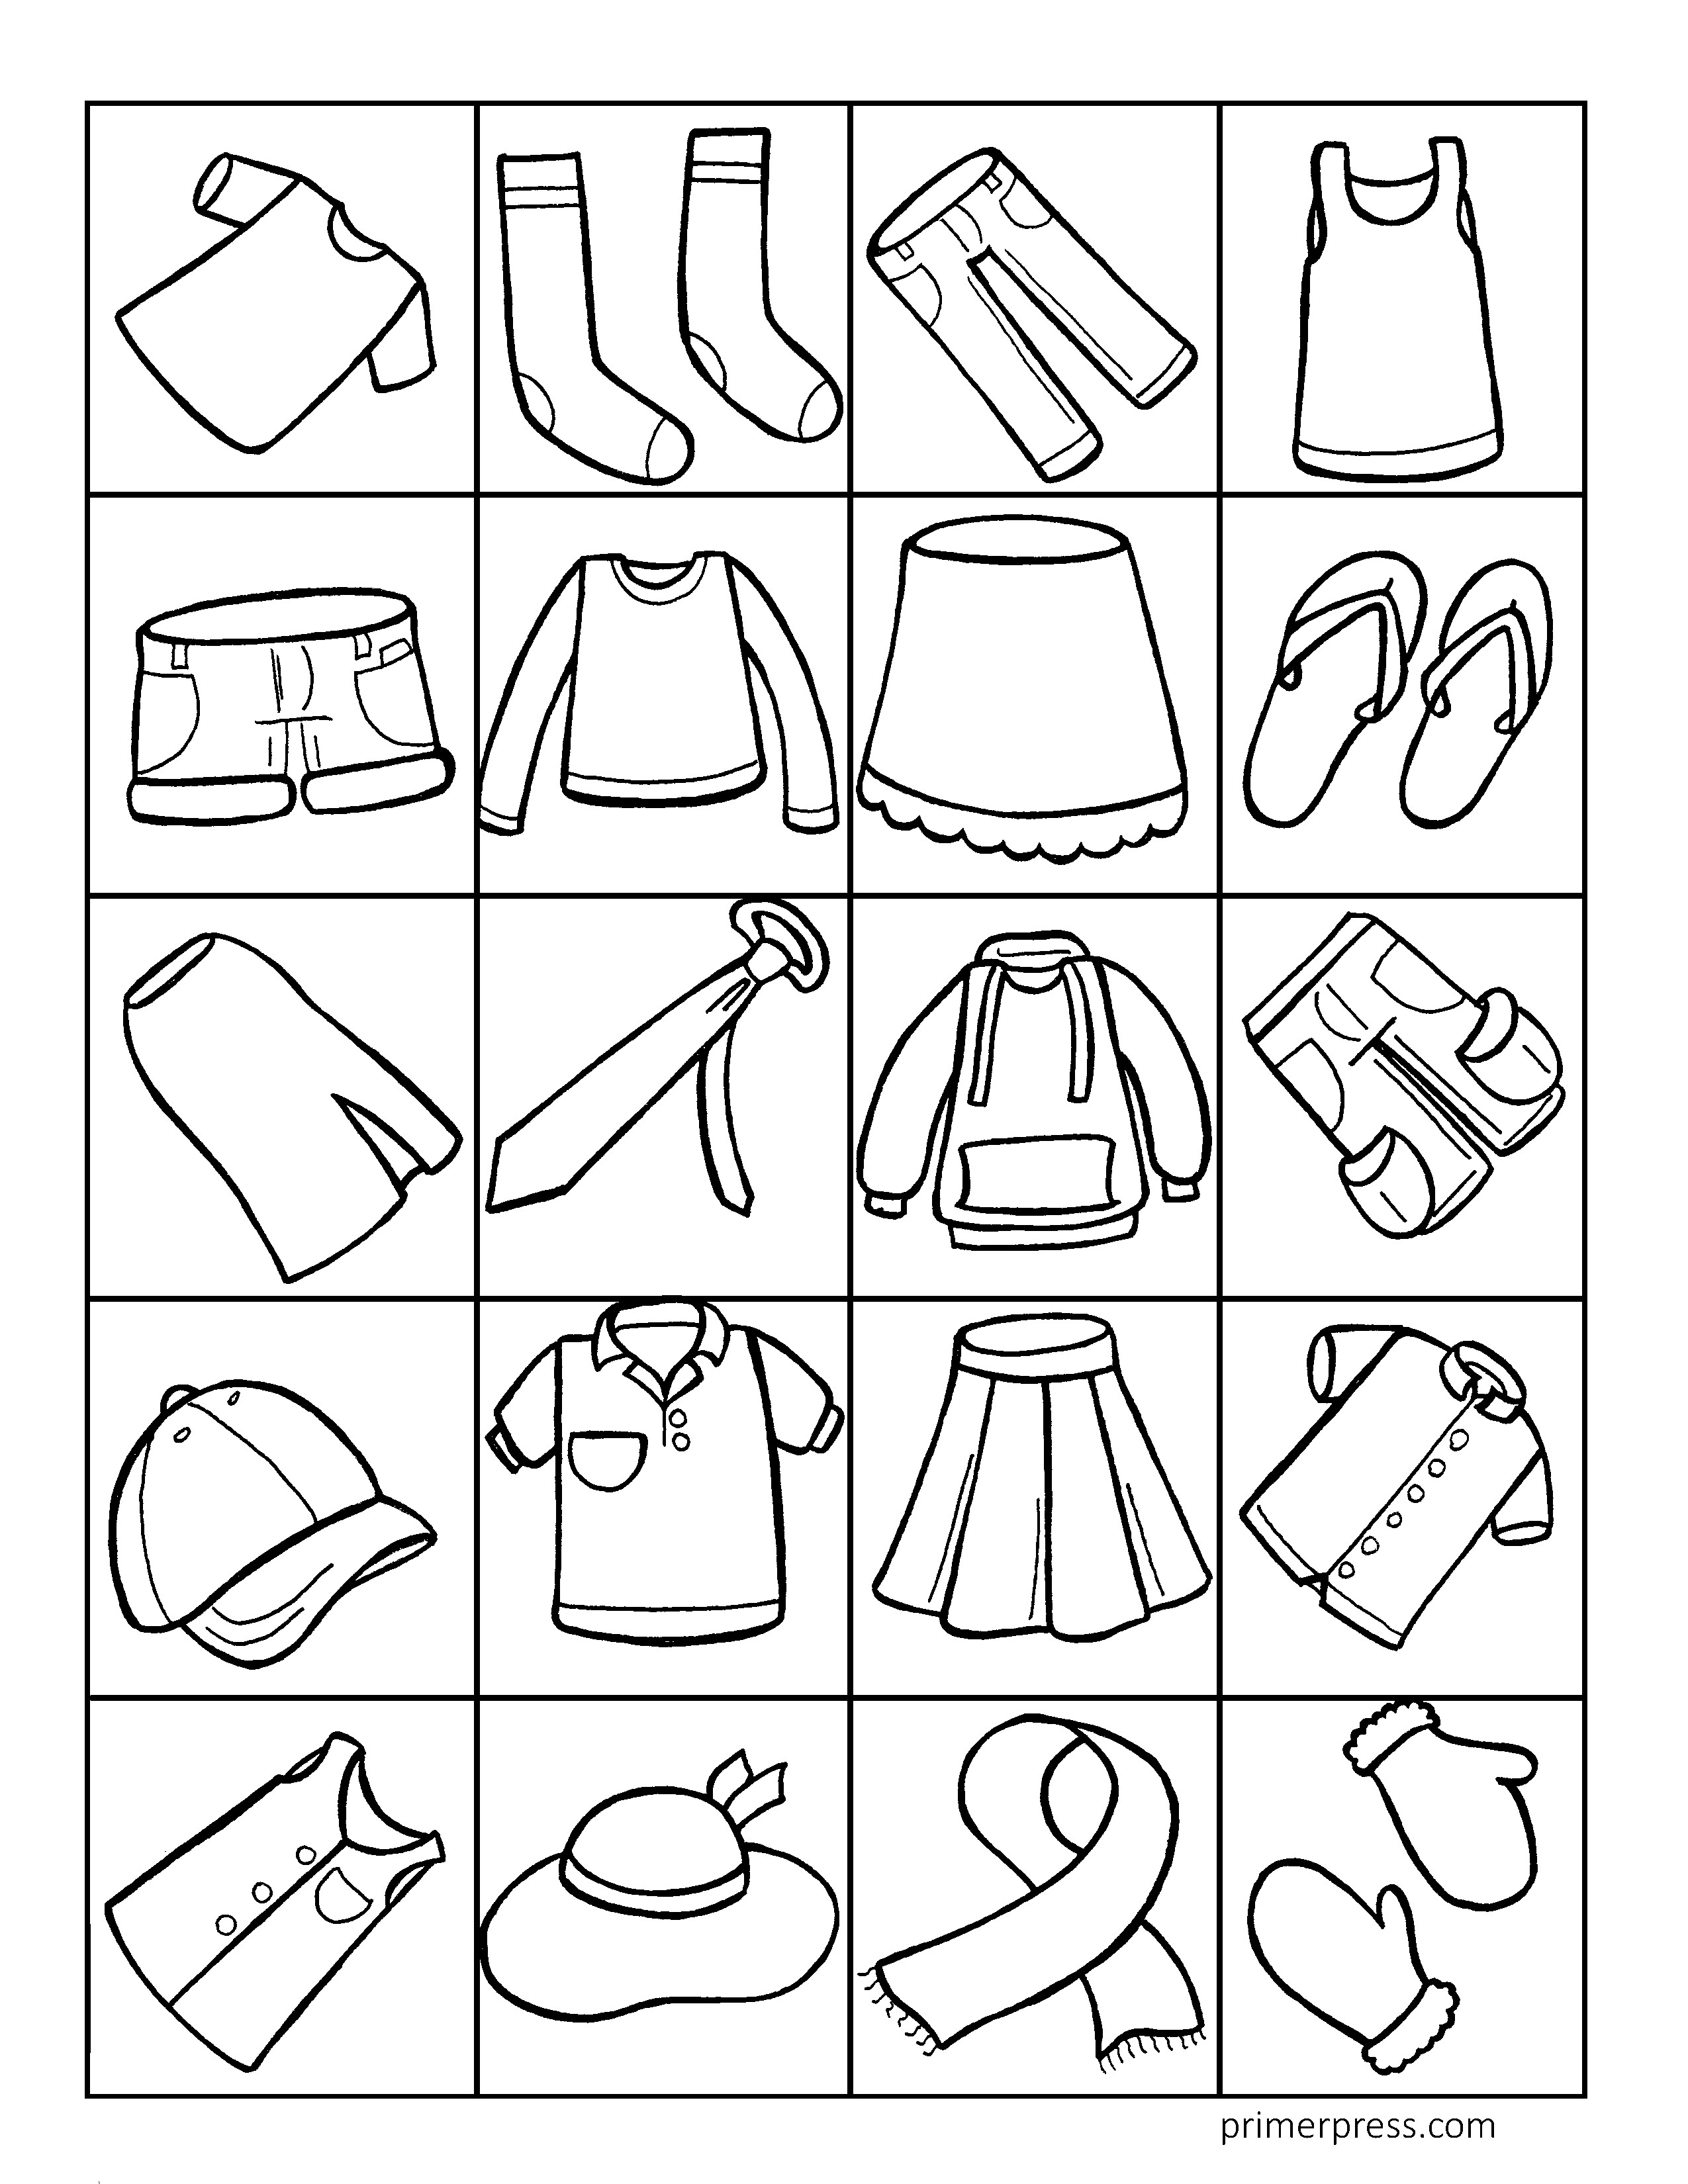 clothing coloring pages another sheet of clothing for ms mannequin paper thin clothing pages coloring